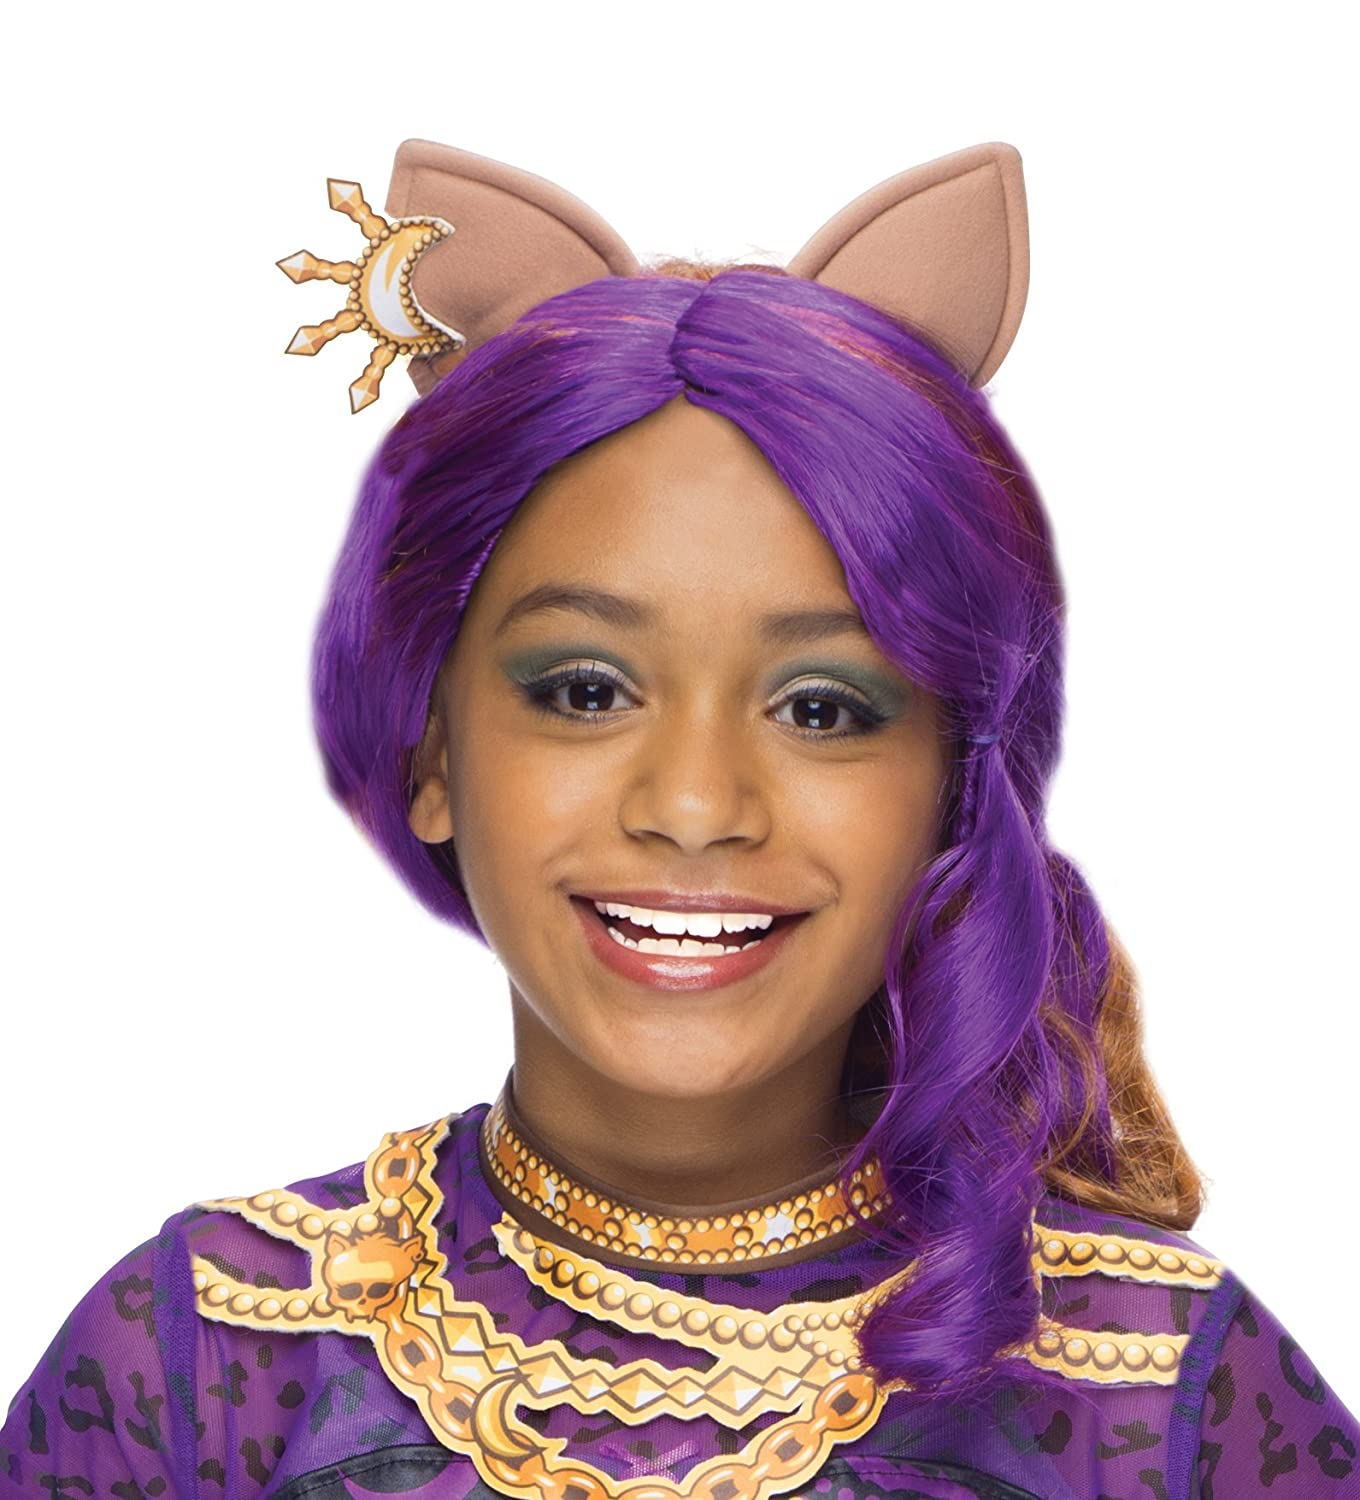 amazoncom rubies monster high clawdeen wolf child costume wig toys games - Clawdeen Wolf Halloween Costume